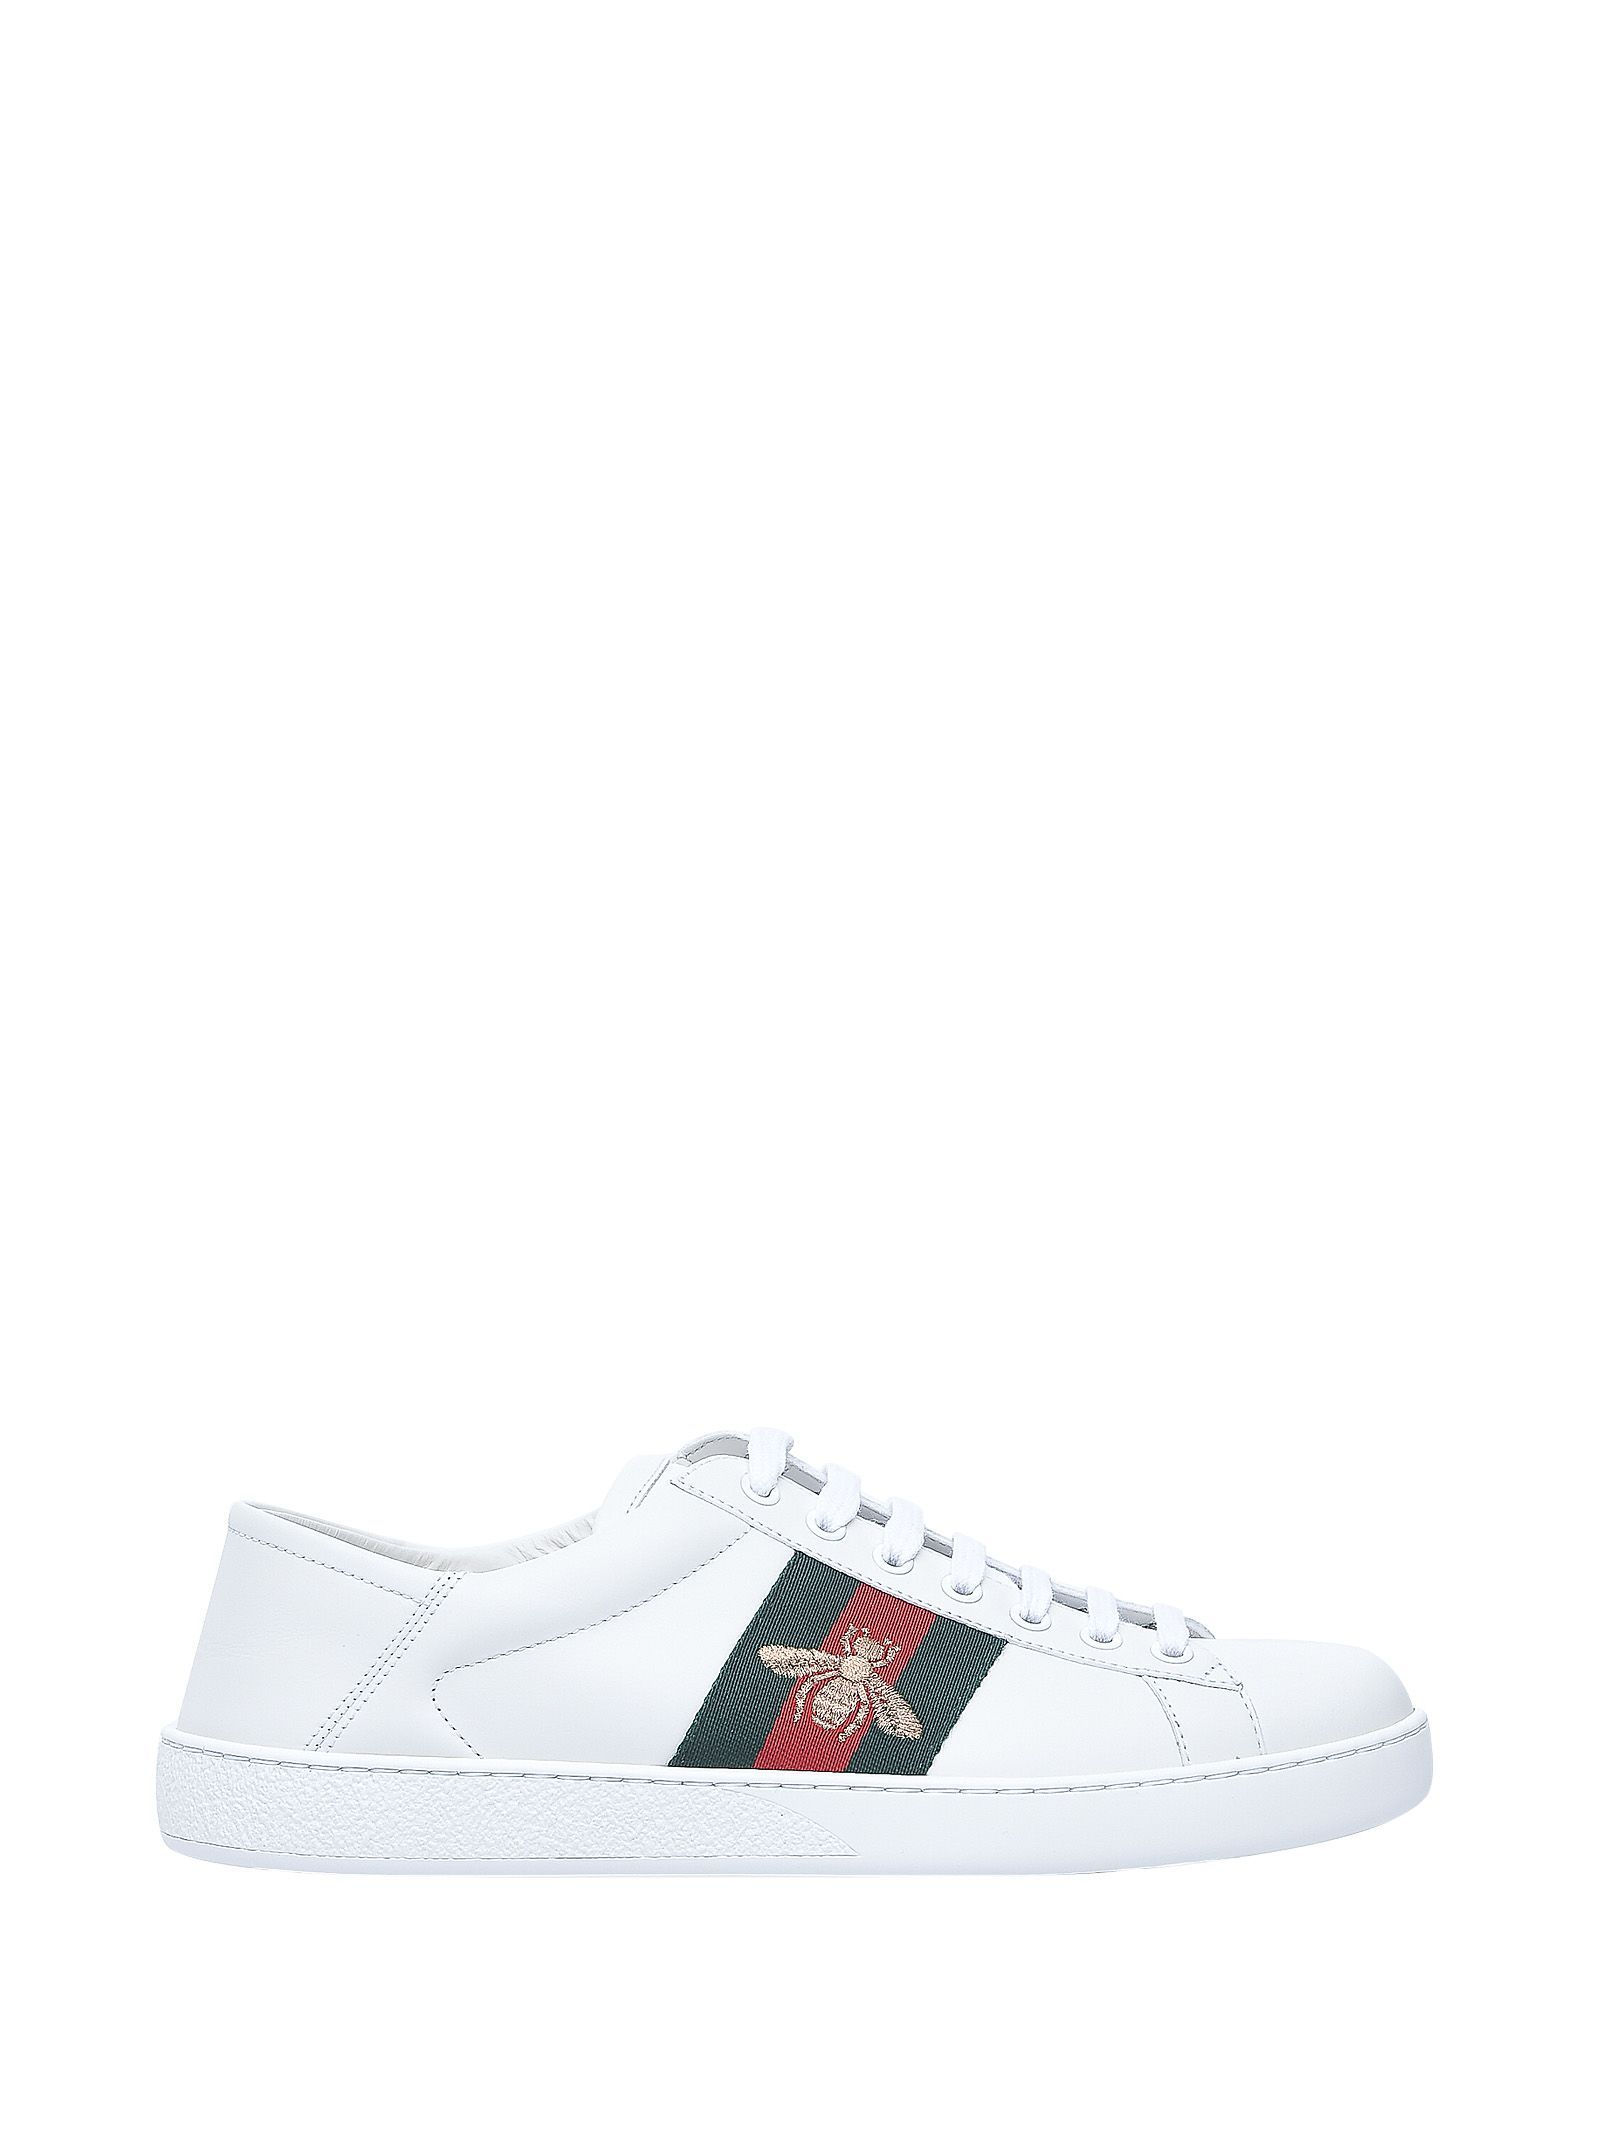 cee8874cfde GUCCI ACE WHITE MEN SNEAKERS.  gucci  shoes